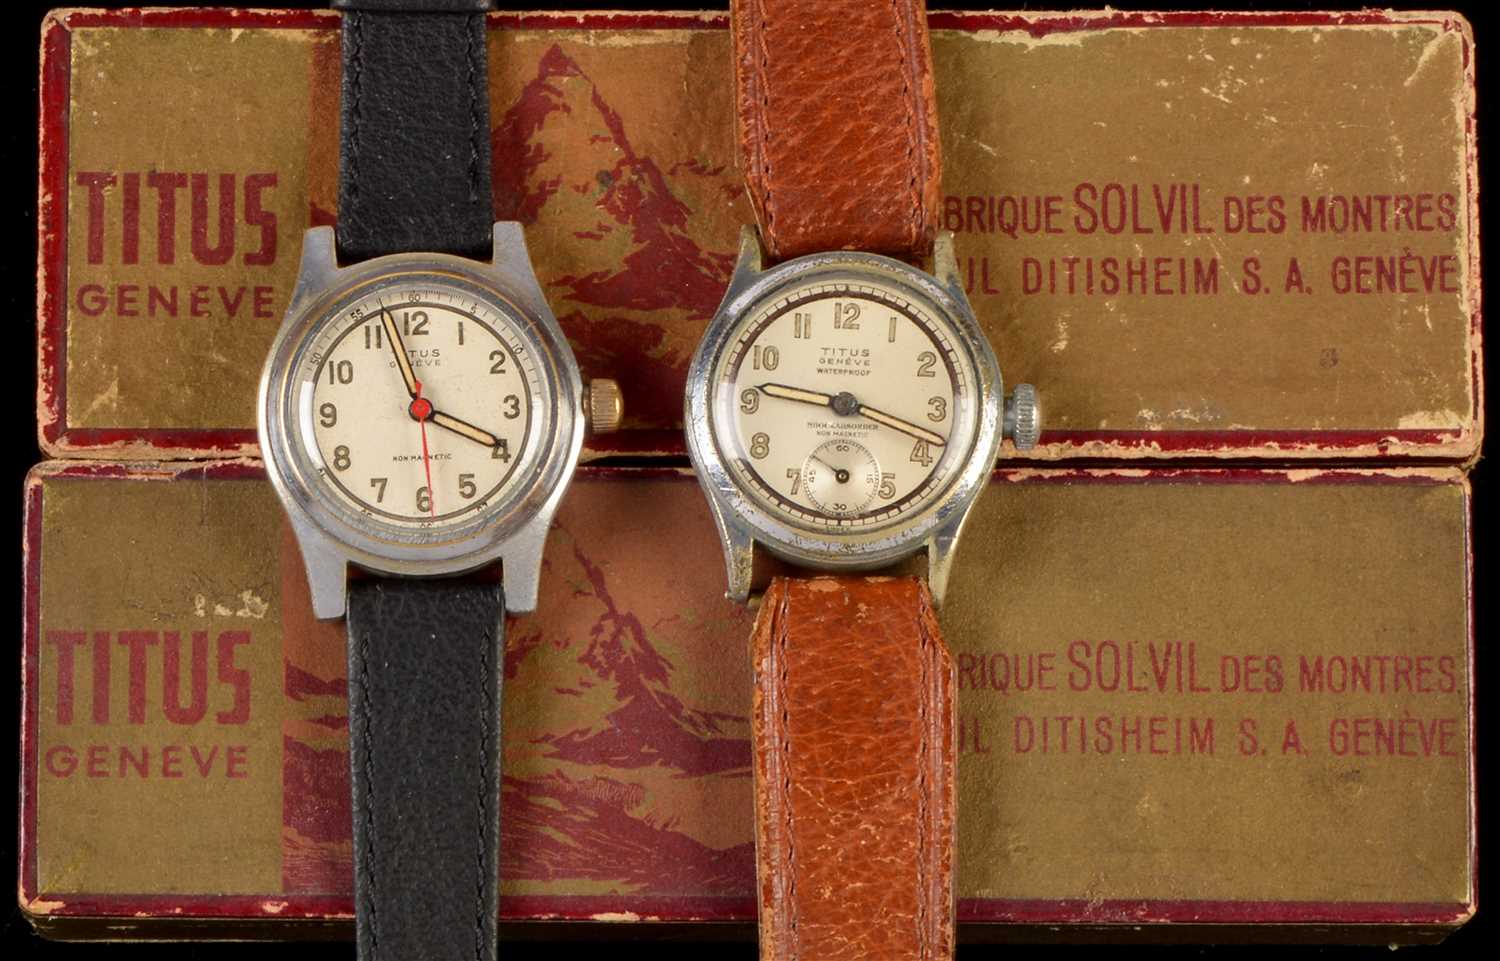 Lot 7-Two Titus Geneve stainless steel wristwatches.